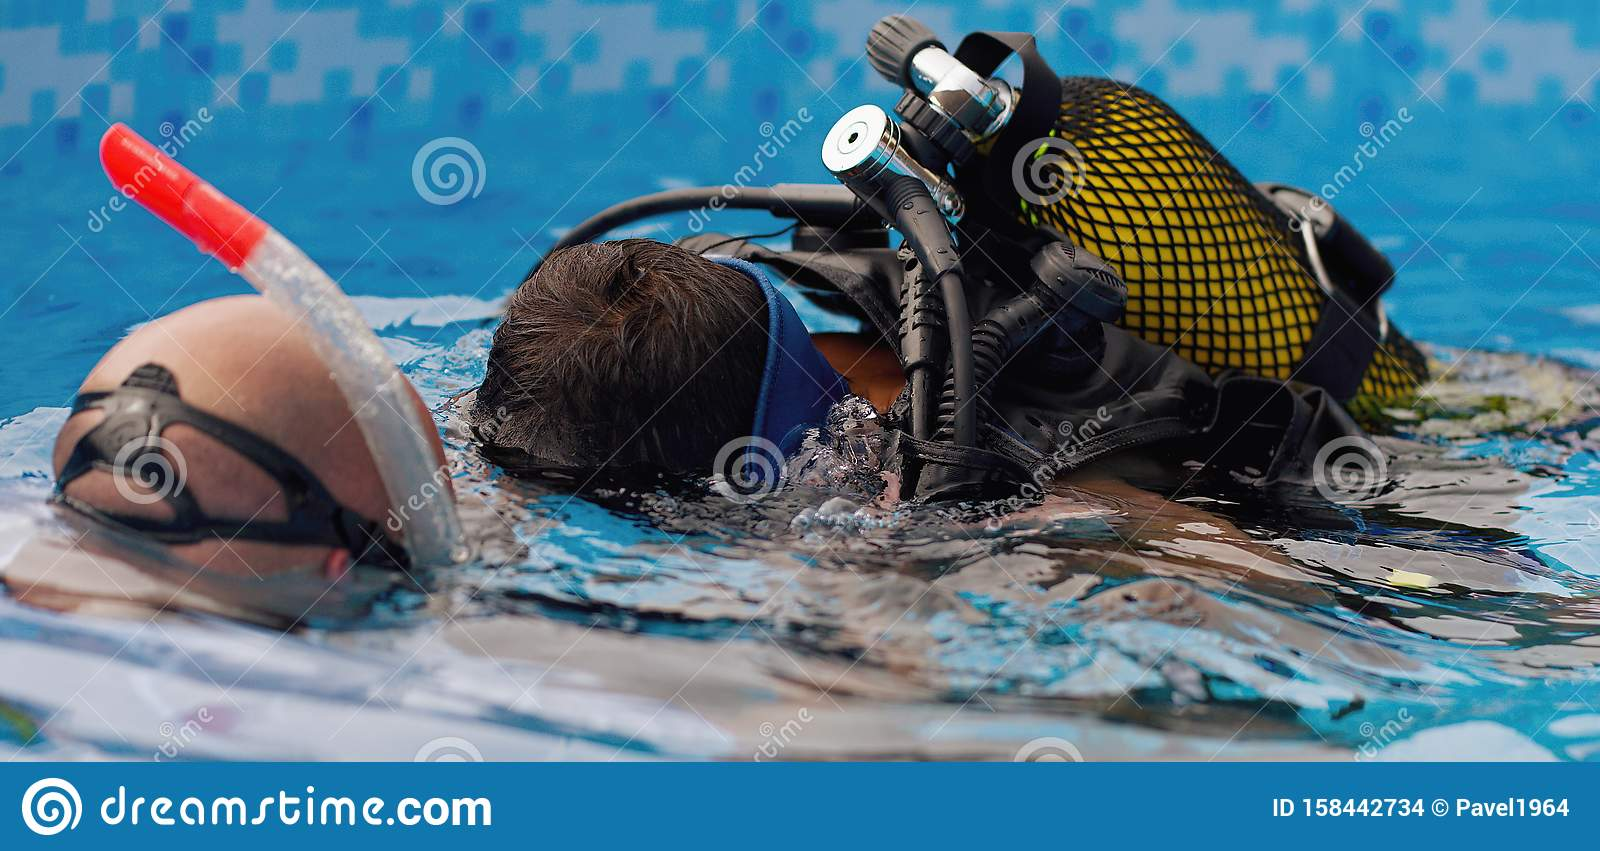 Scuba Diving Lesson With Children Stock Photo - Image of ...